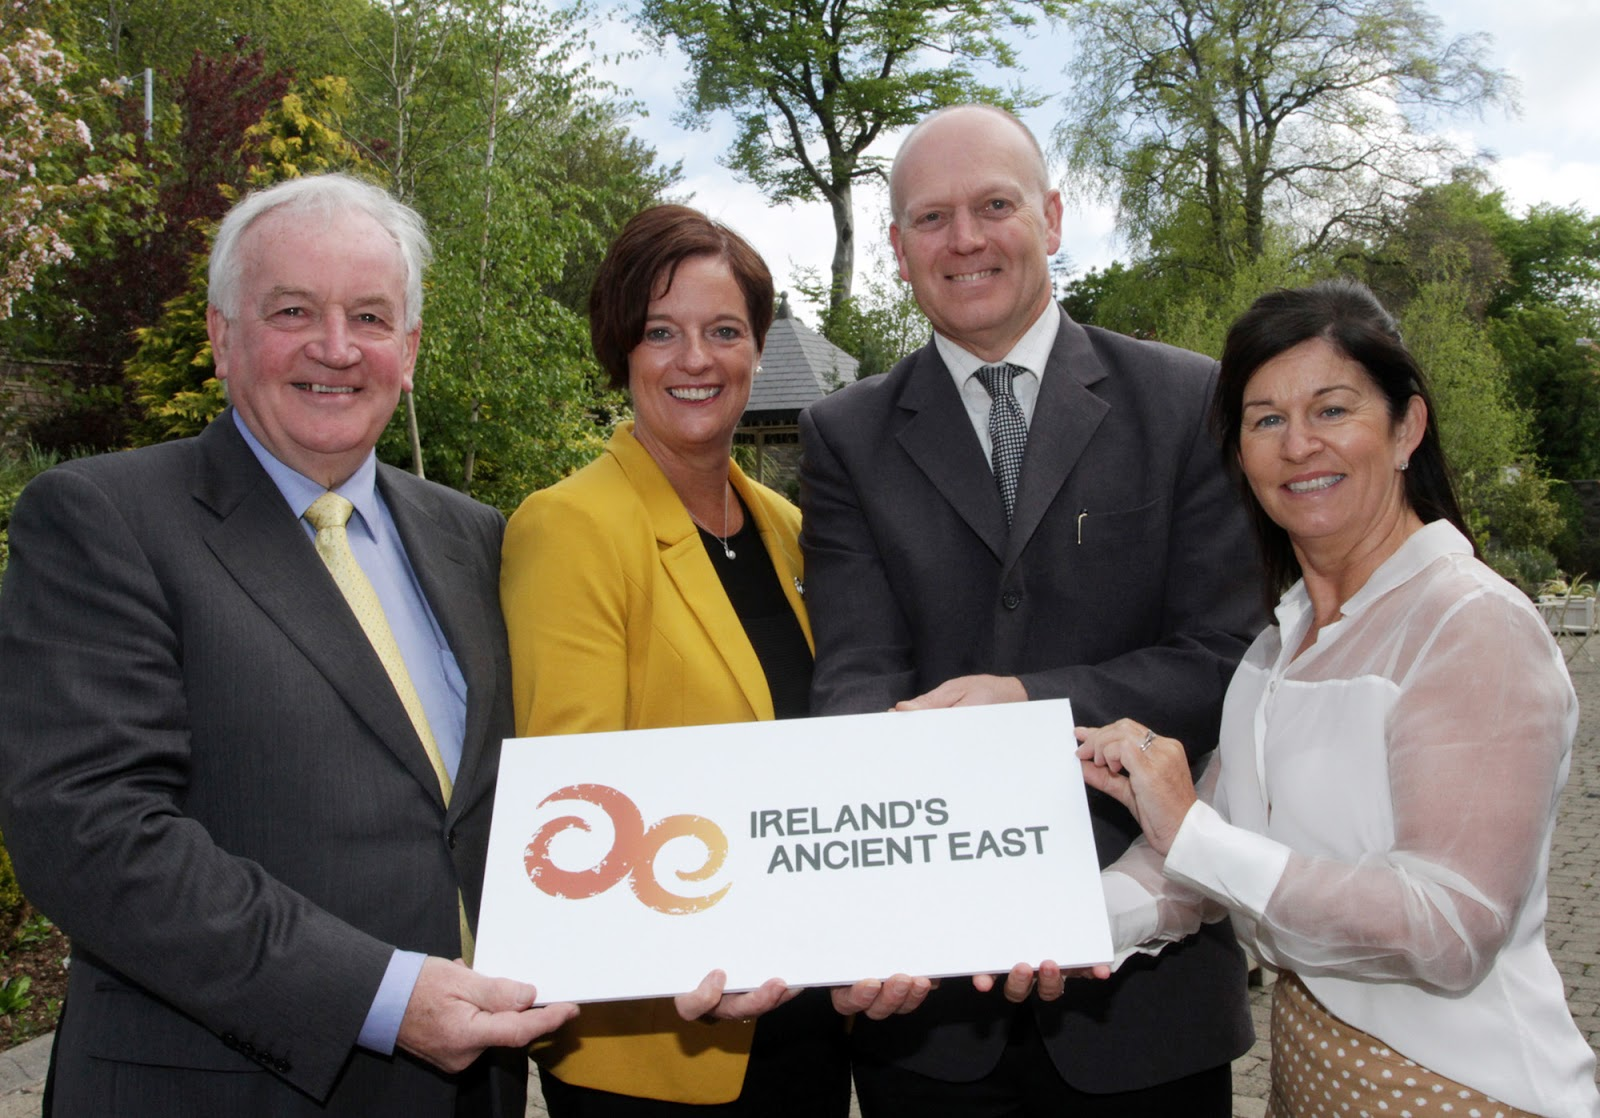 Wicklow uplands council 2015 wicklow tourism businesses meet with filte ireland to progress irelands ancient east malvernweather Gallery